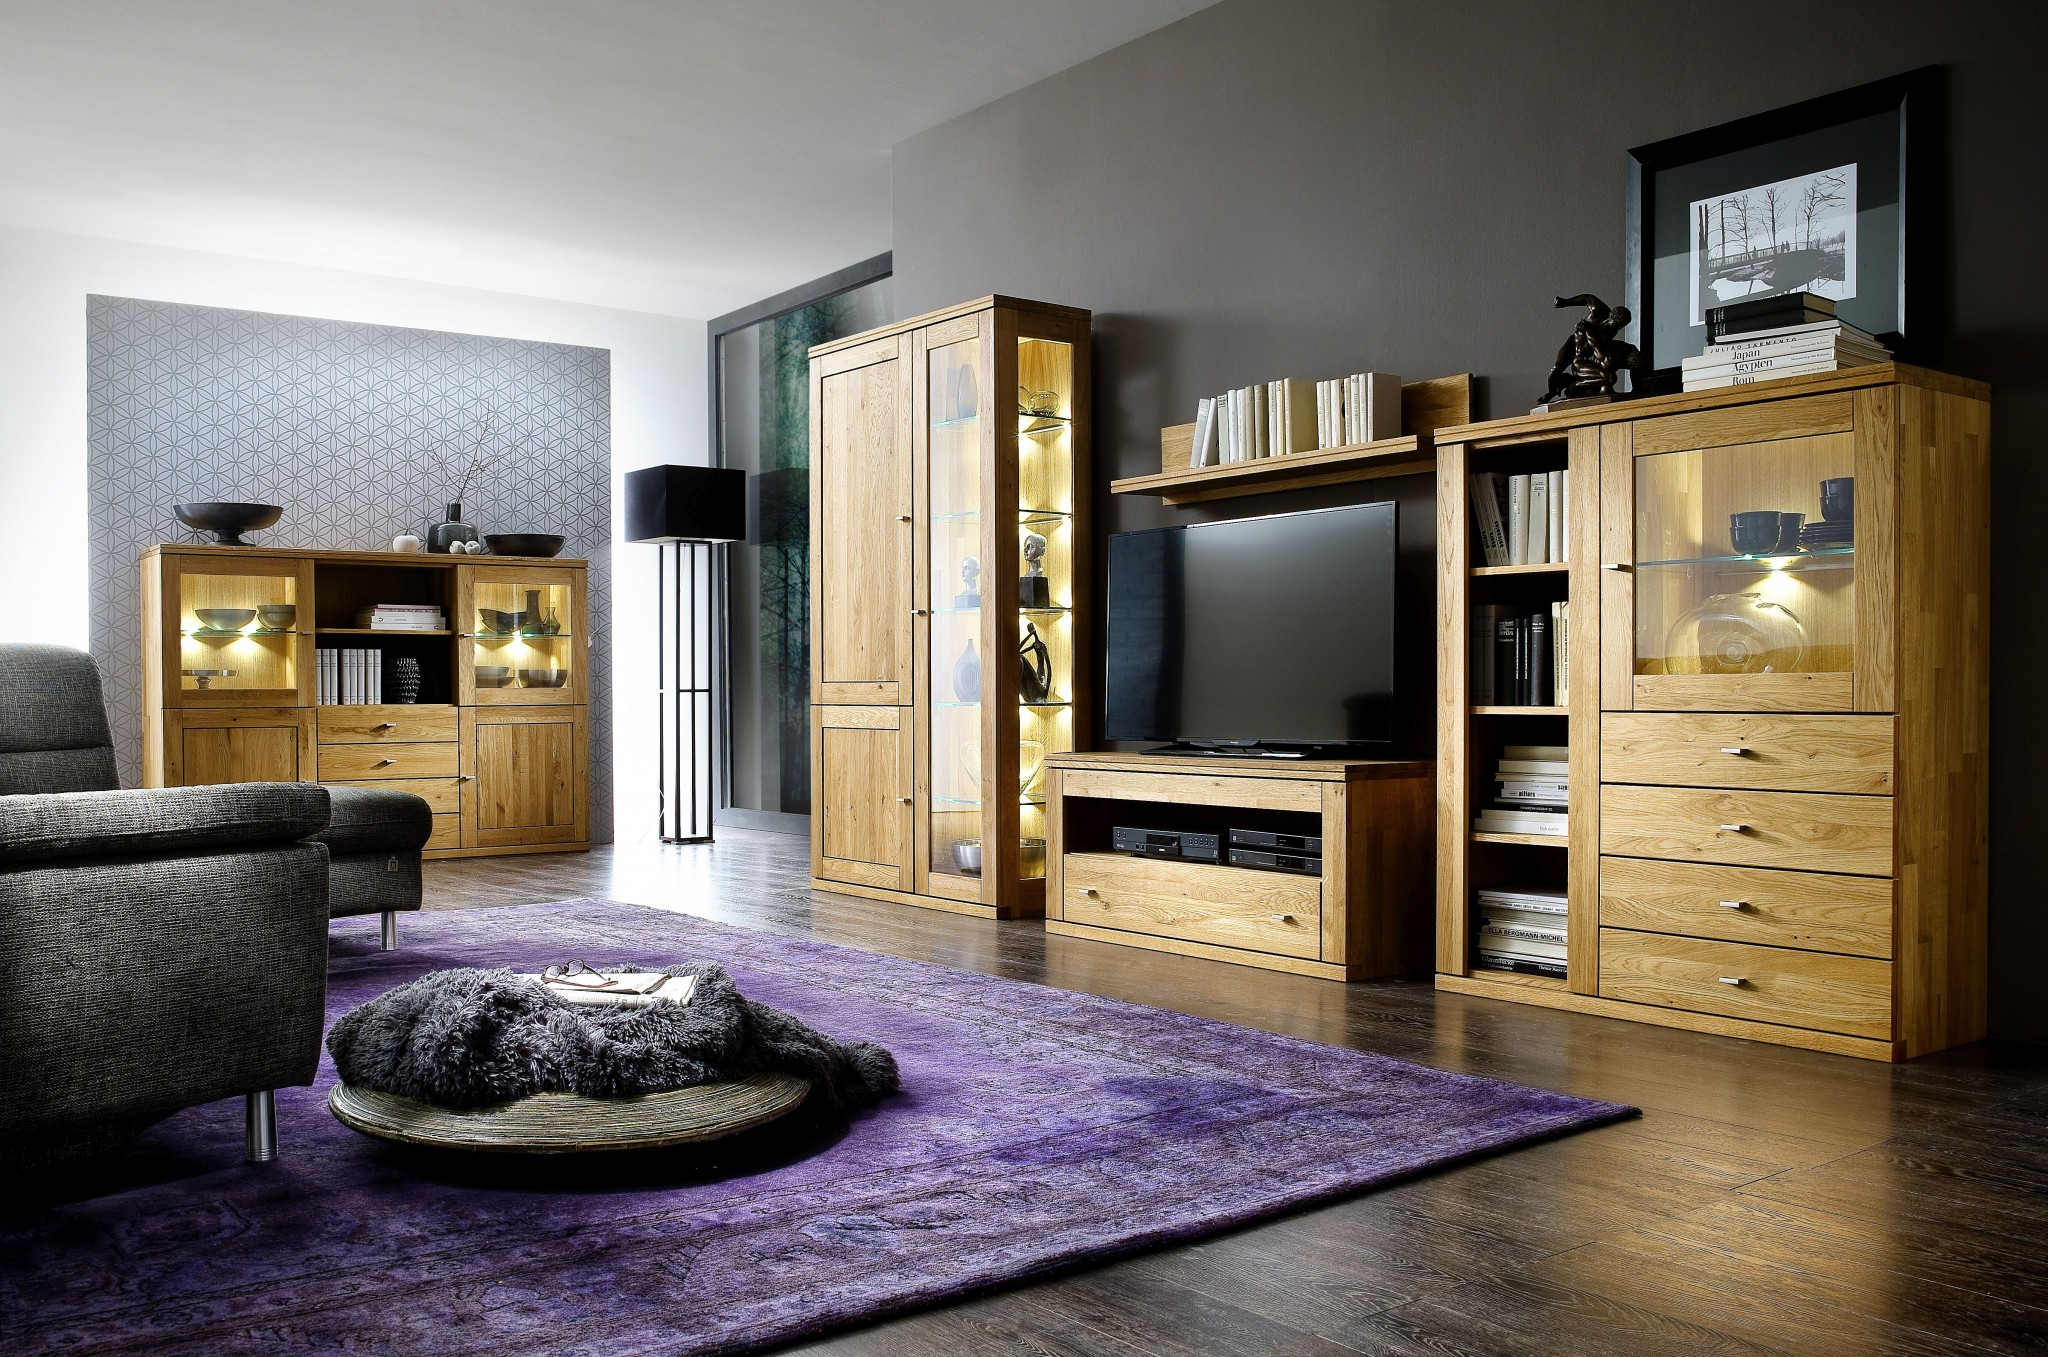 wohnwand cm breit pic. Black Bedroom Furniture Sets. Home Design Ideas